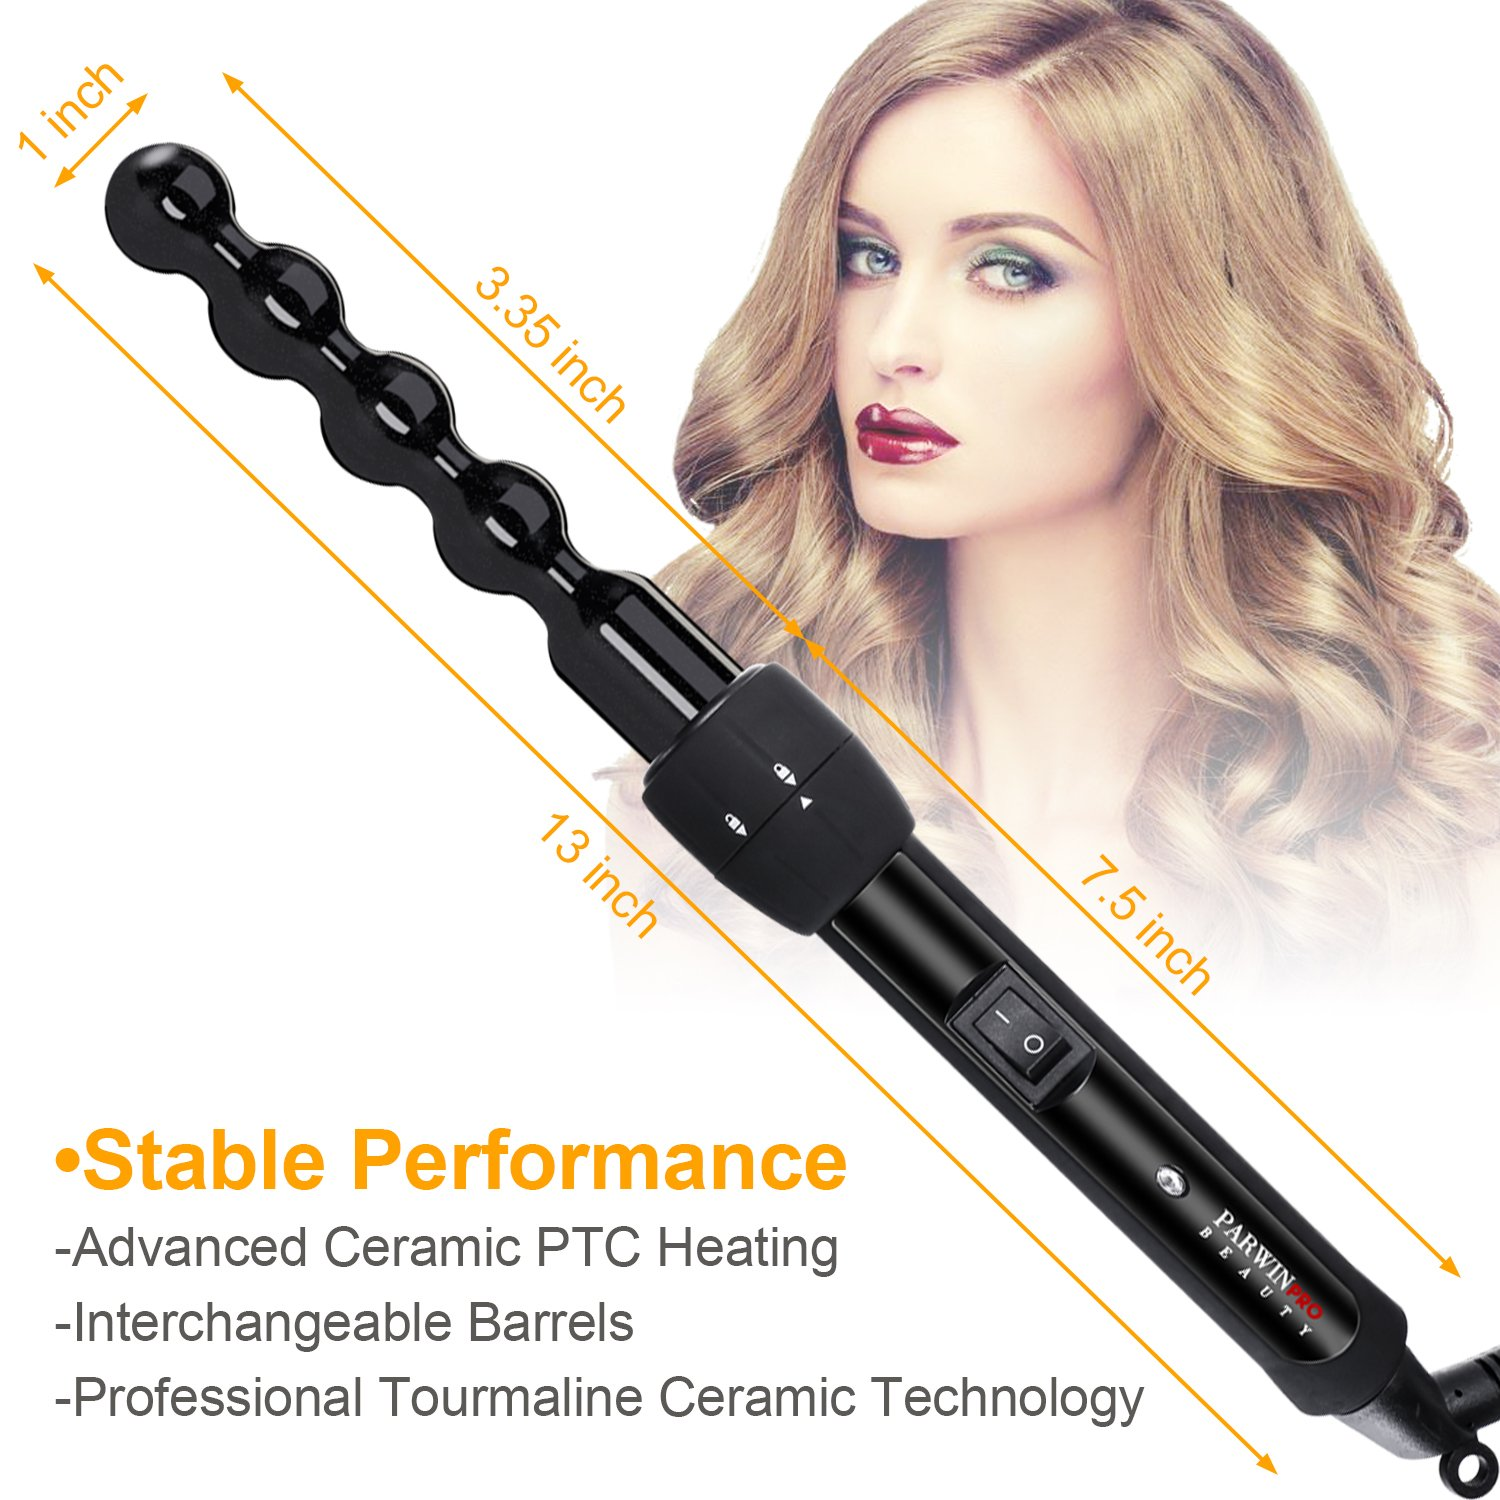 PARWIN BEAUTY Curling Wand 5 in 1 Professional Curling Iron Set 0.3 to 1.25 Inch Interchangeable Ceramic Barrels Hair Curling Iron Wand - Hair Curler for All Hair Types with Glove and Travel Case by PARWIN PRO BEAUTY (Image #6)